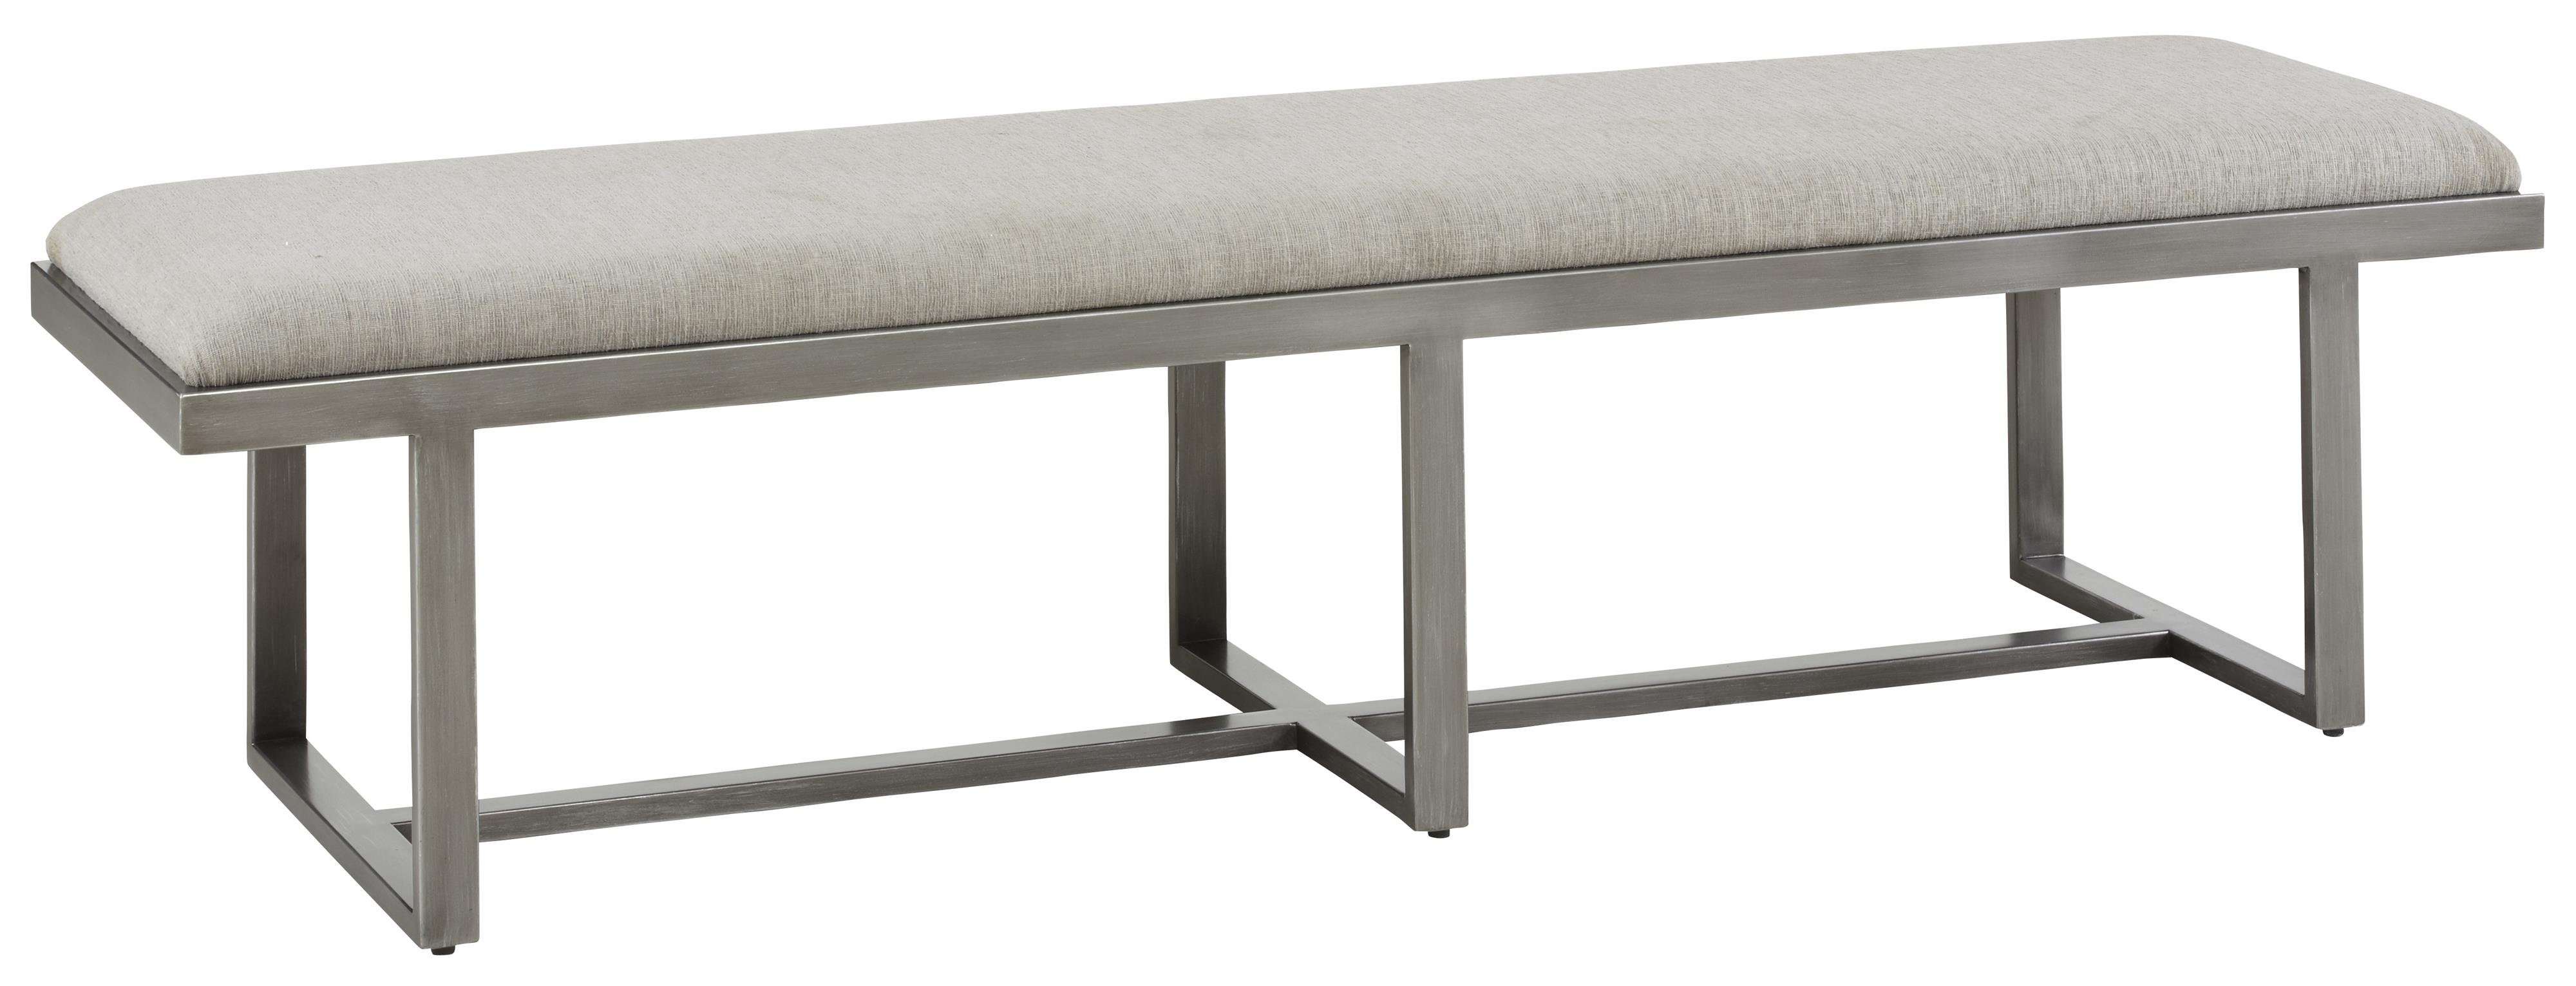 Belfort Signature Urban Treasures 14th and U Metal Bench - Item Number: 223372-1227